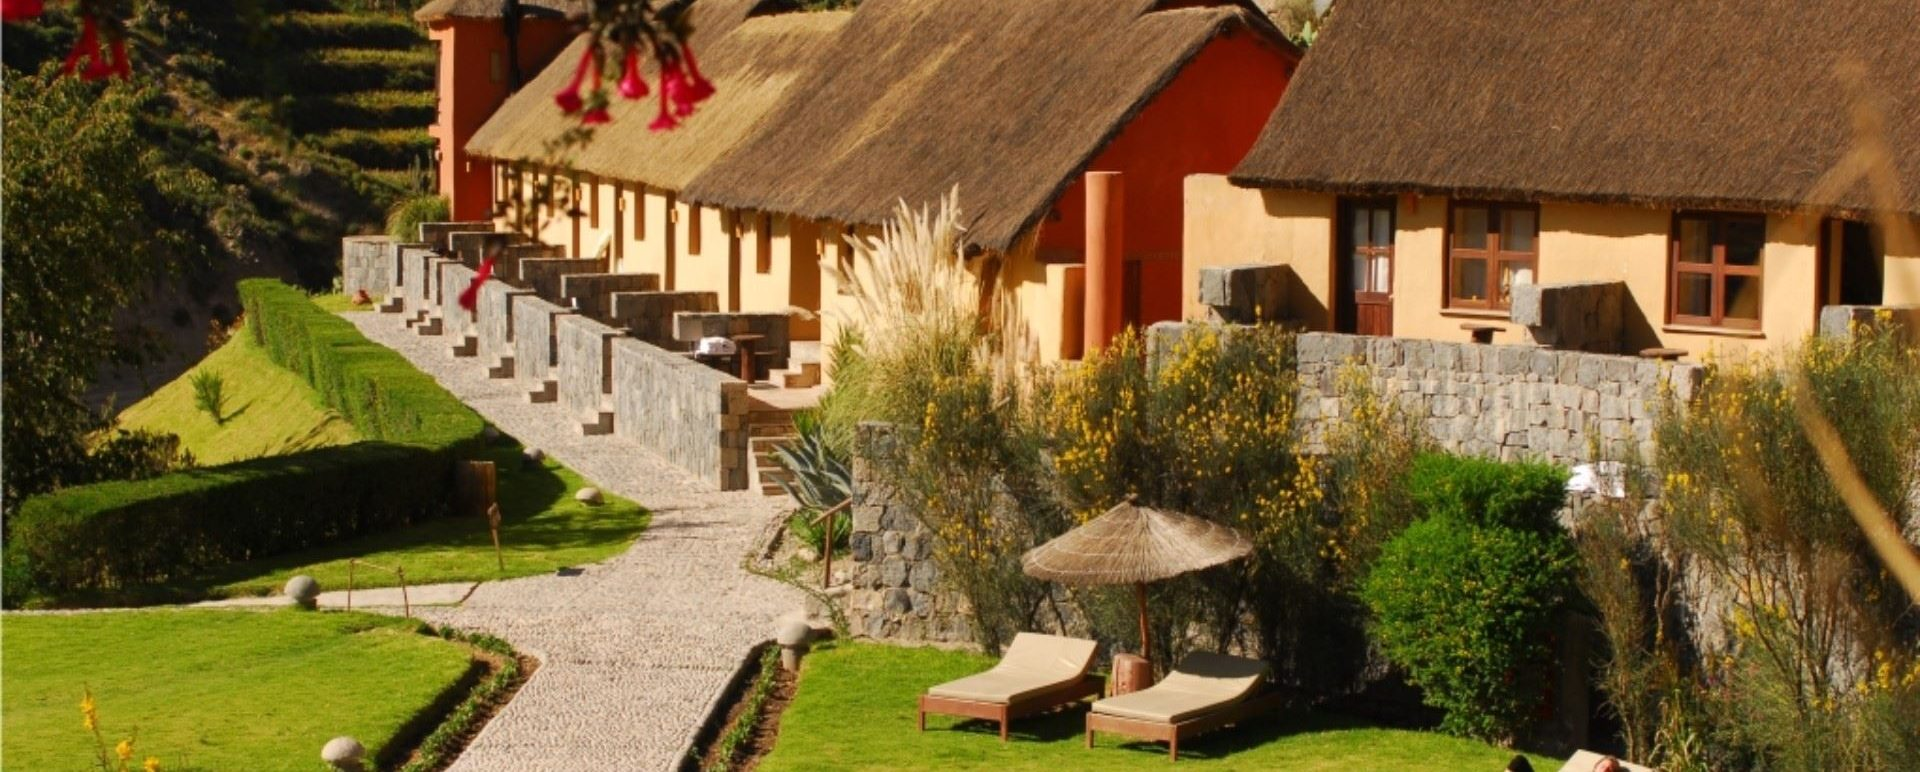 Colca Lodge Front